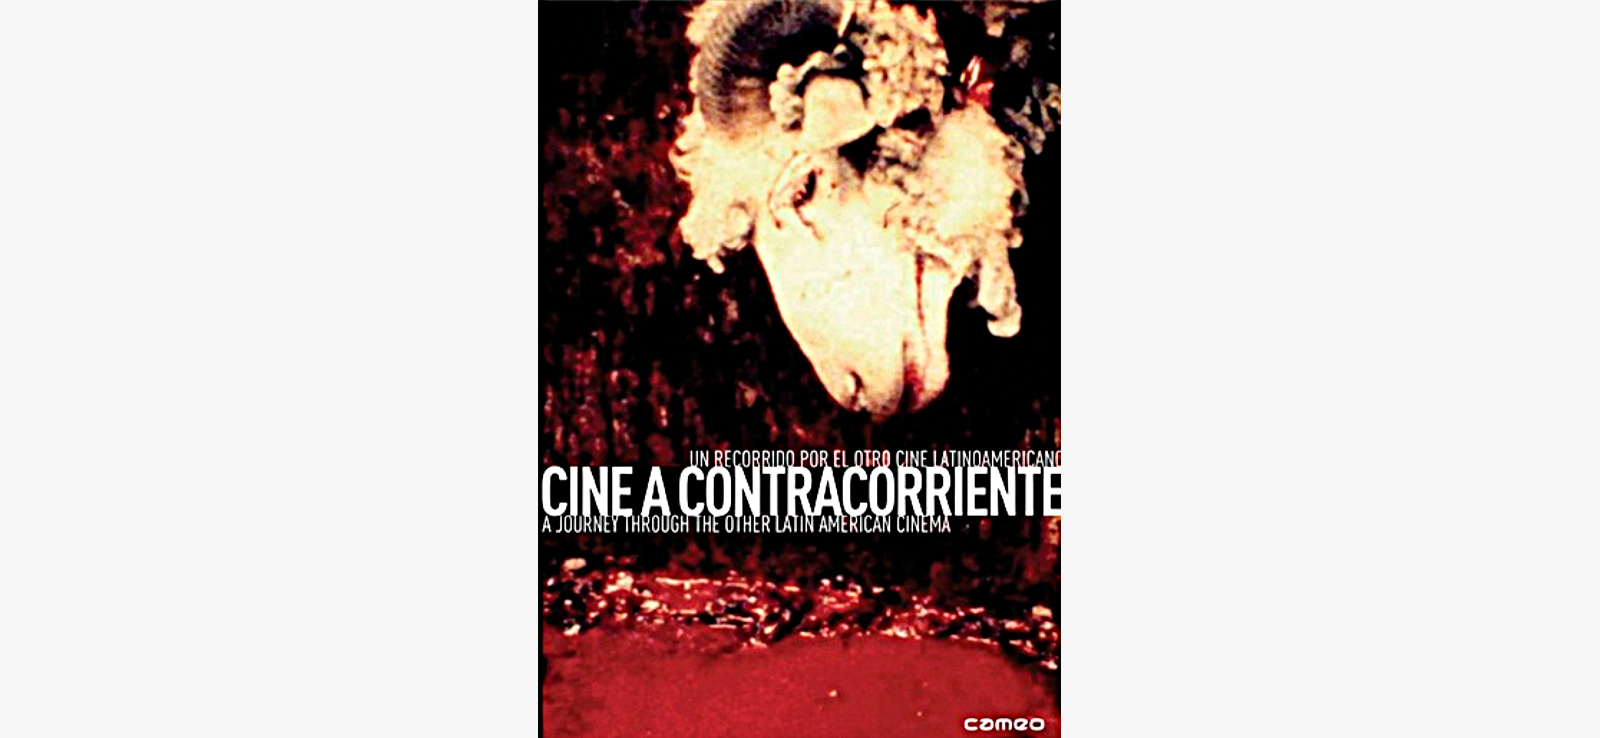 Antoni-Pinent-film-curator-Retrospective-cinema-against-the-tide-book-cover